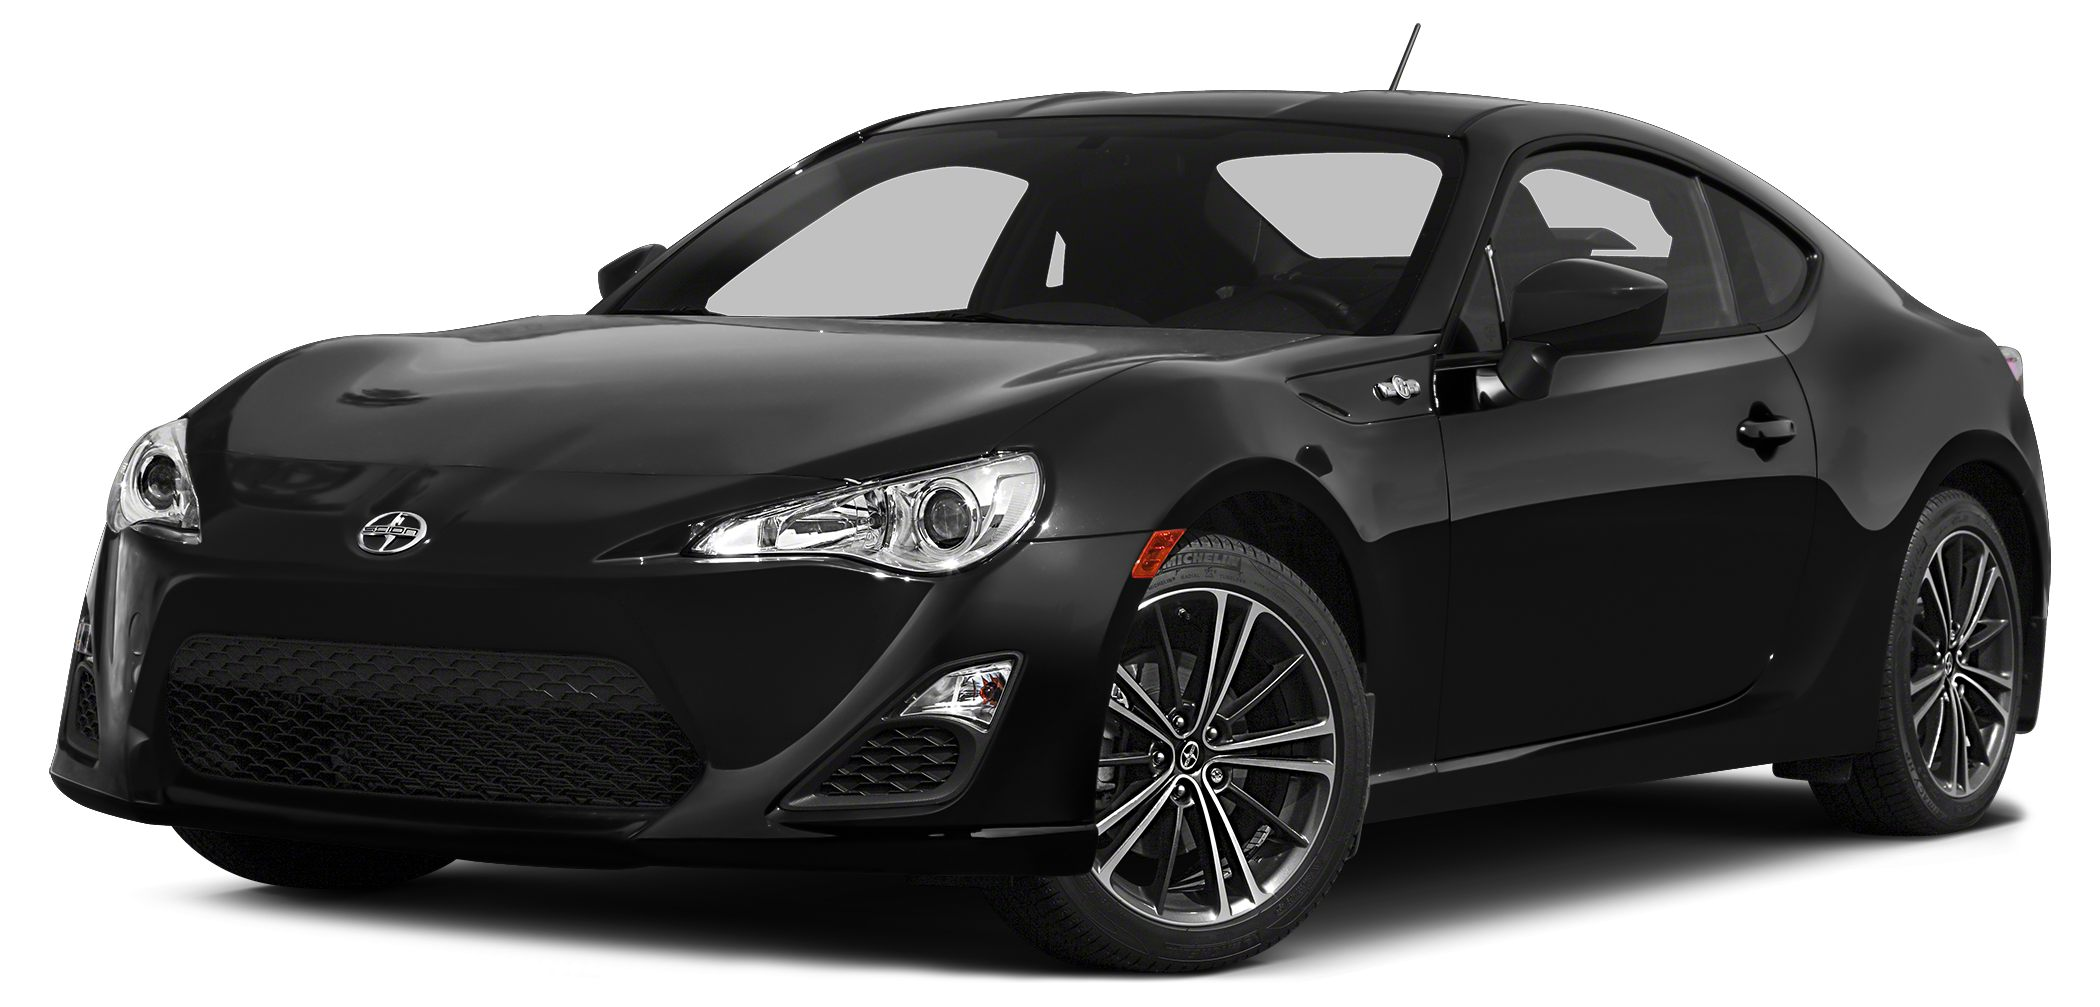 2013 Scion FR-S   WHEN IT COMES TO EXCELLENCE IN USED CAR SALESYOU KNOW YOURE AT STAR AUTO M